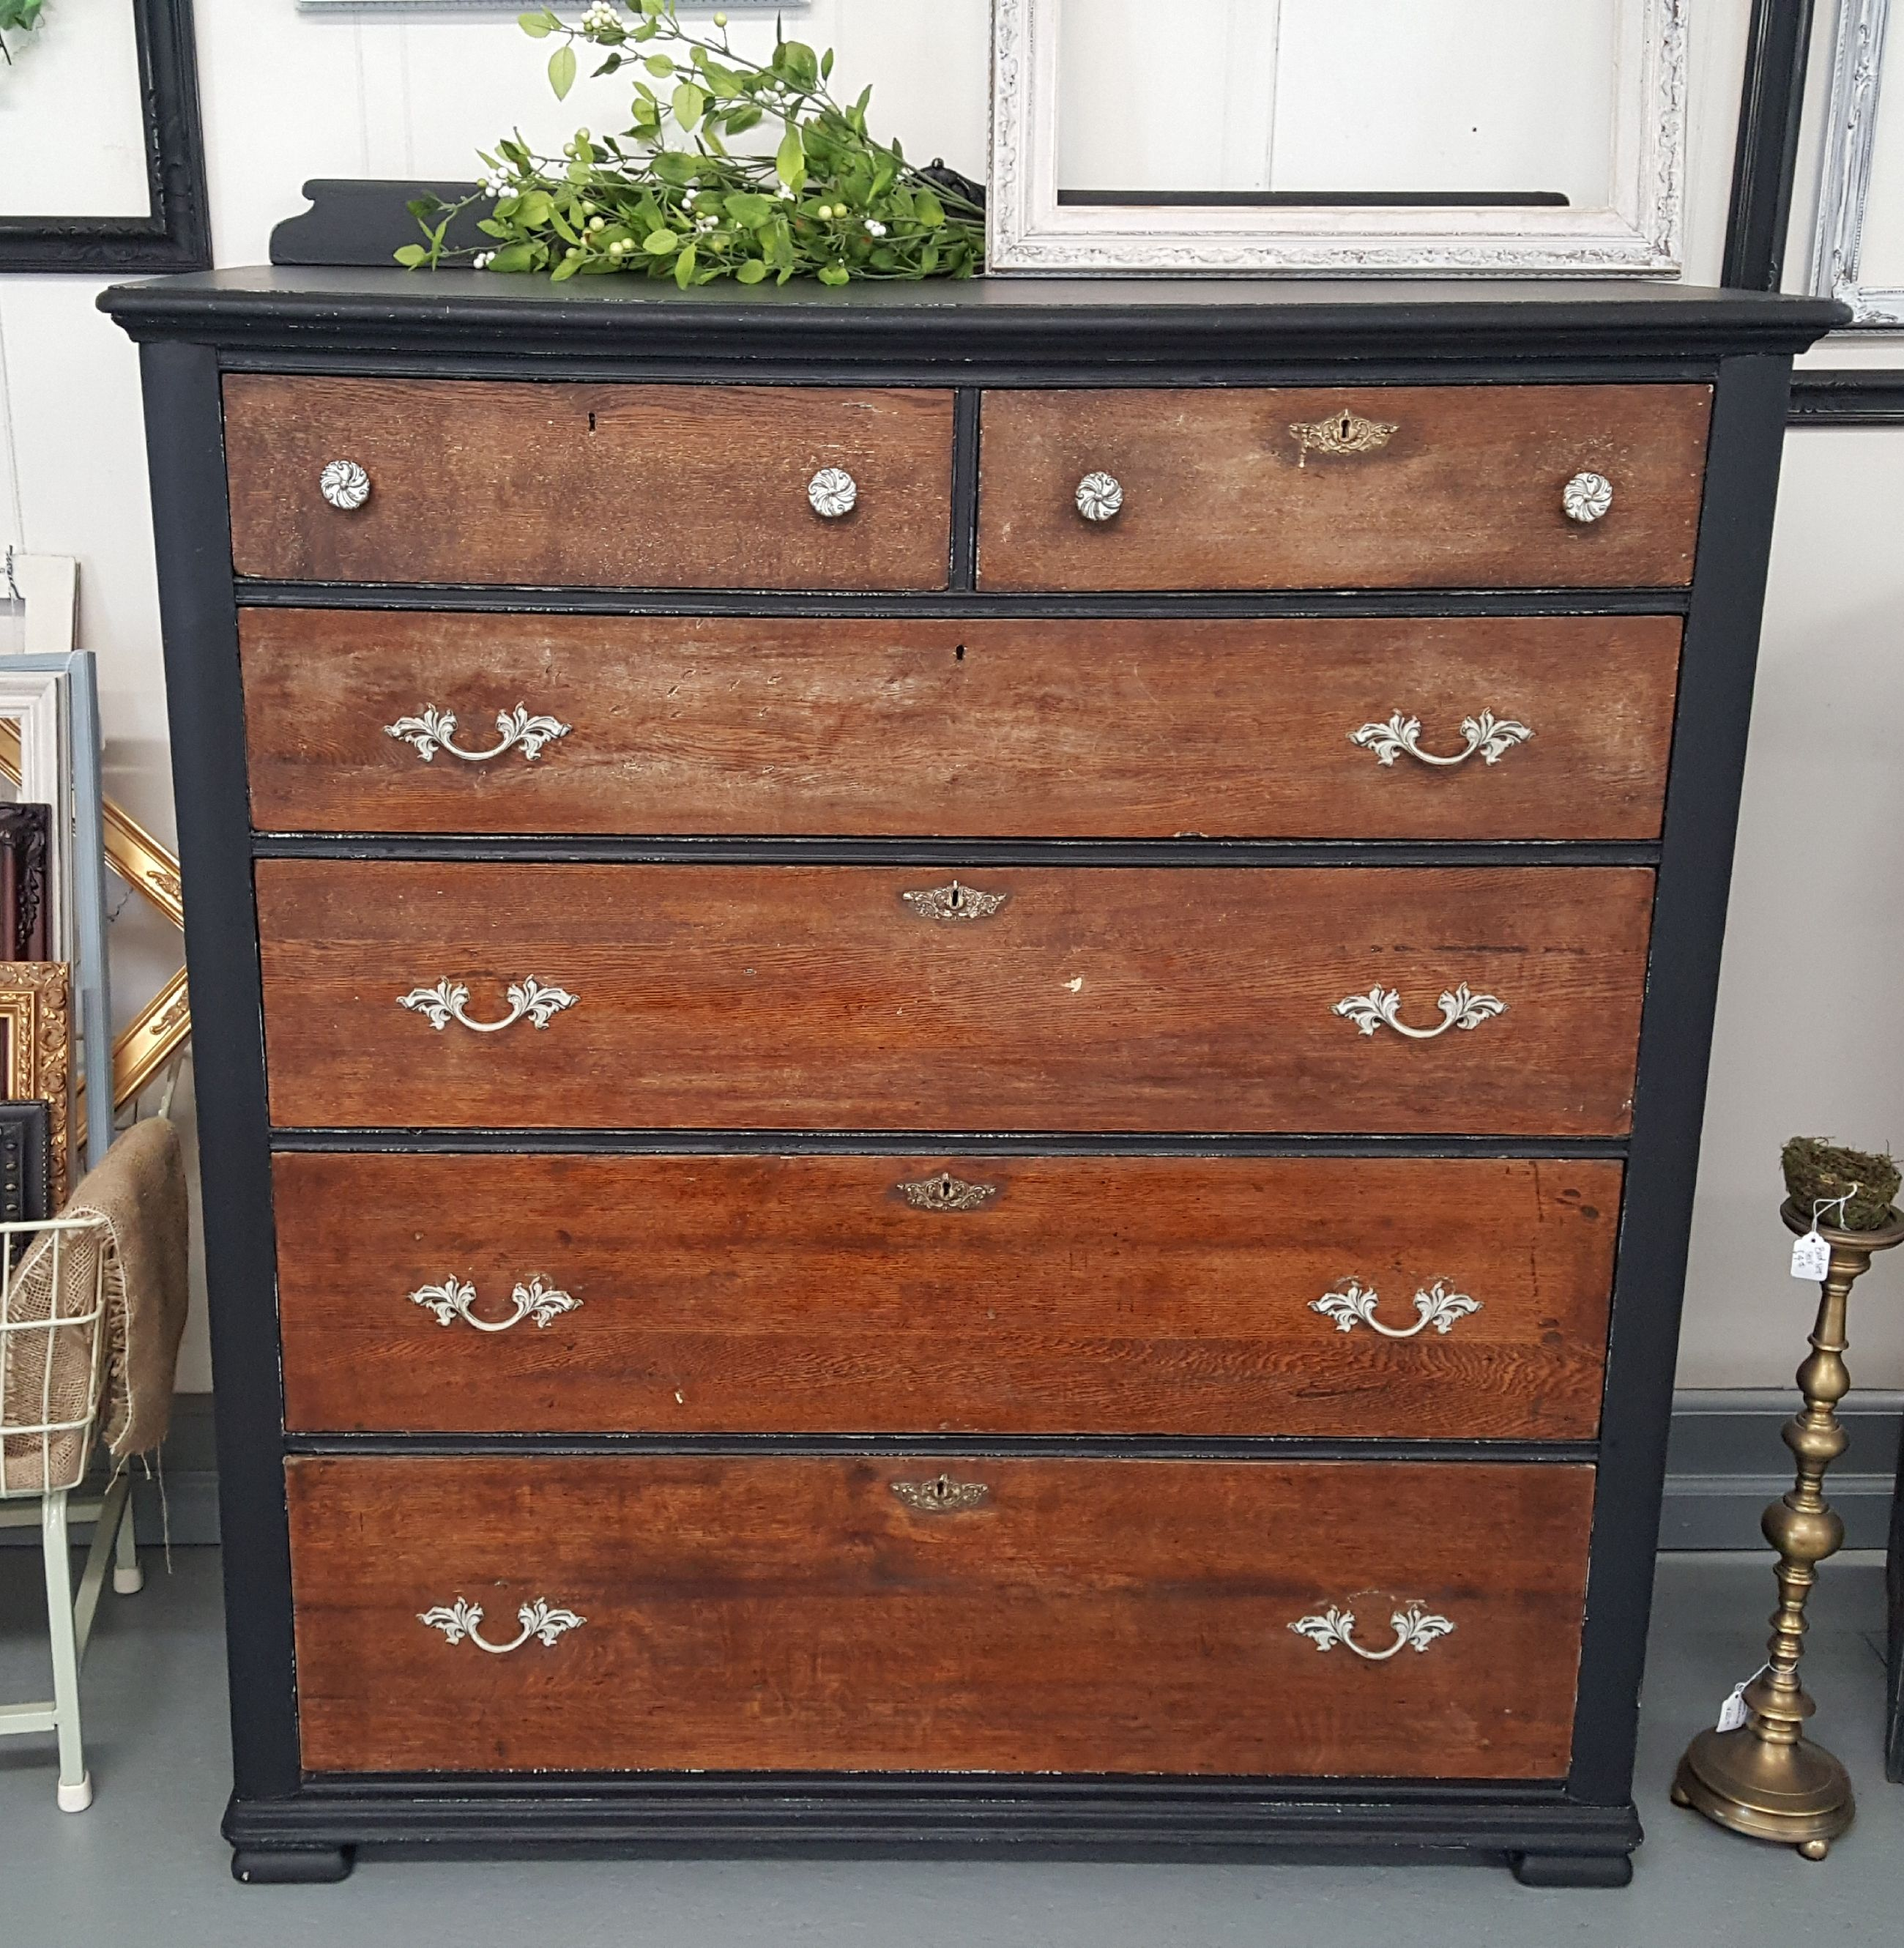 Mive Antique Dresser With 6 Drawers Measures Over 4ft Tall And Wide Heavy Piece To Own Get It Now In Our Online We Deliver Even The